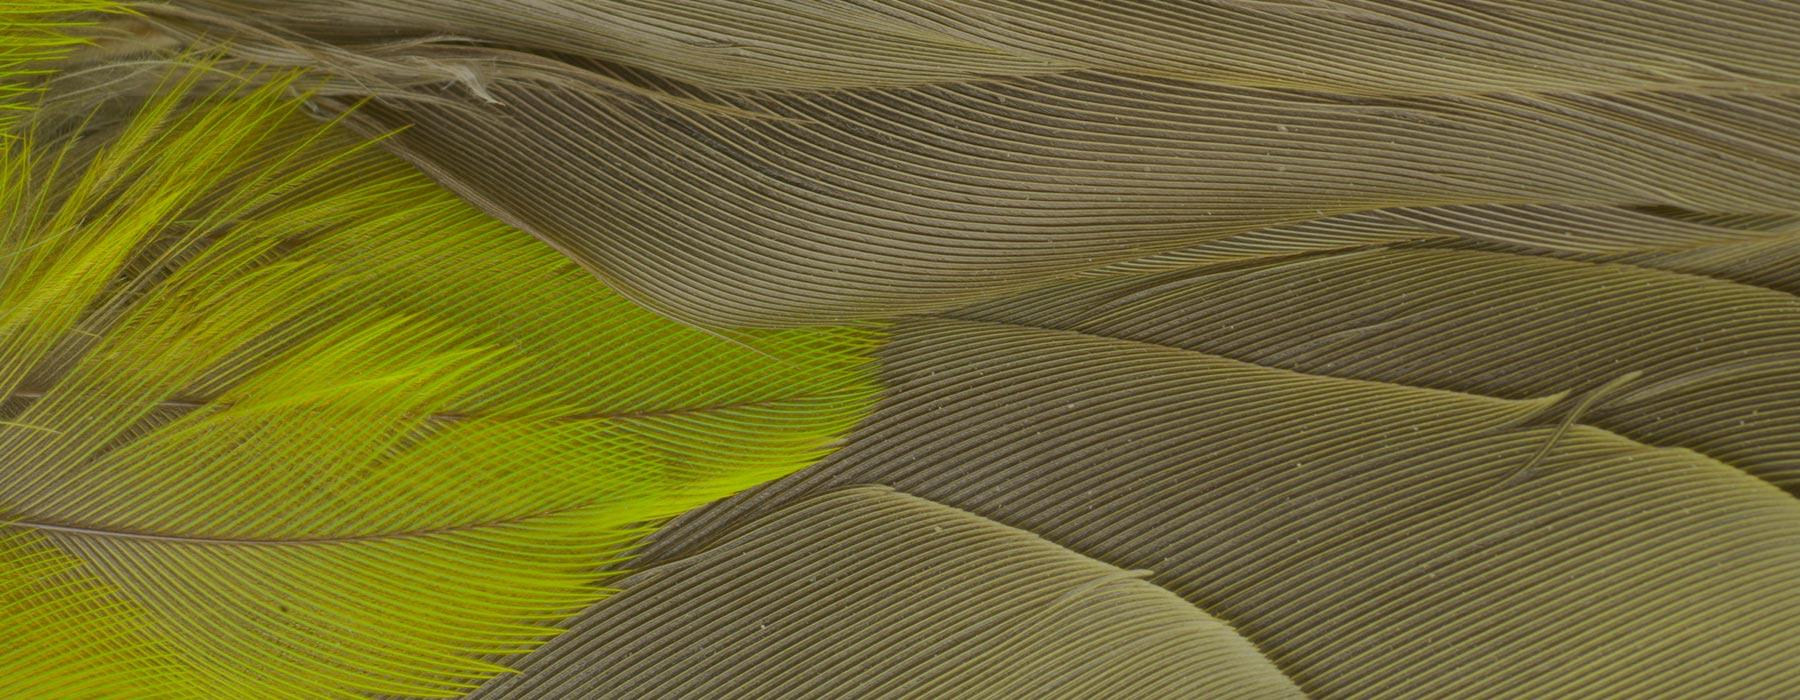 Extreme close-up of green feathers